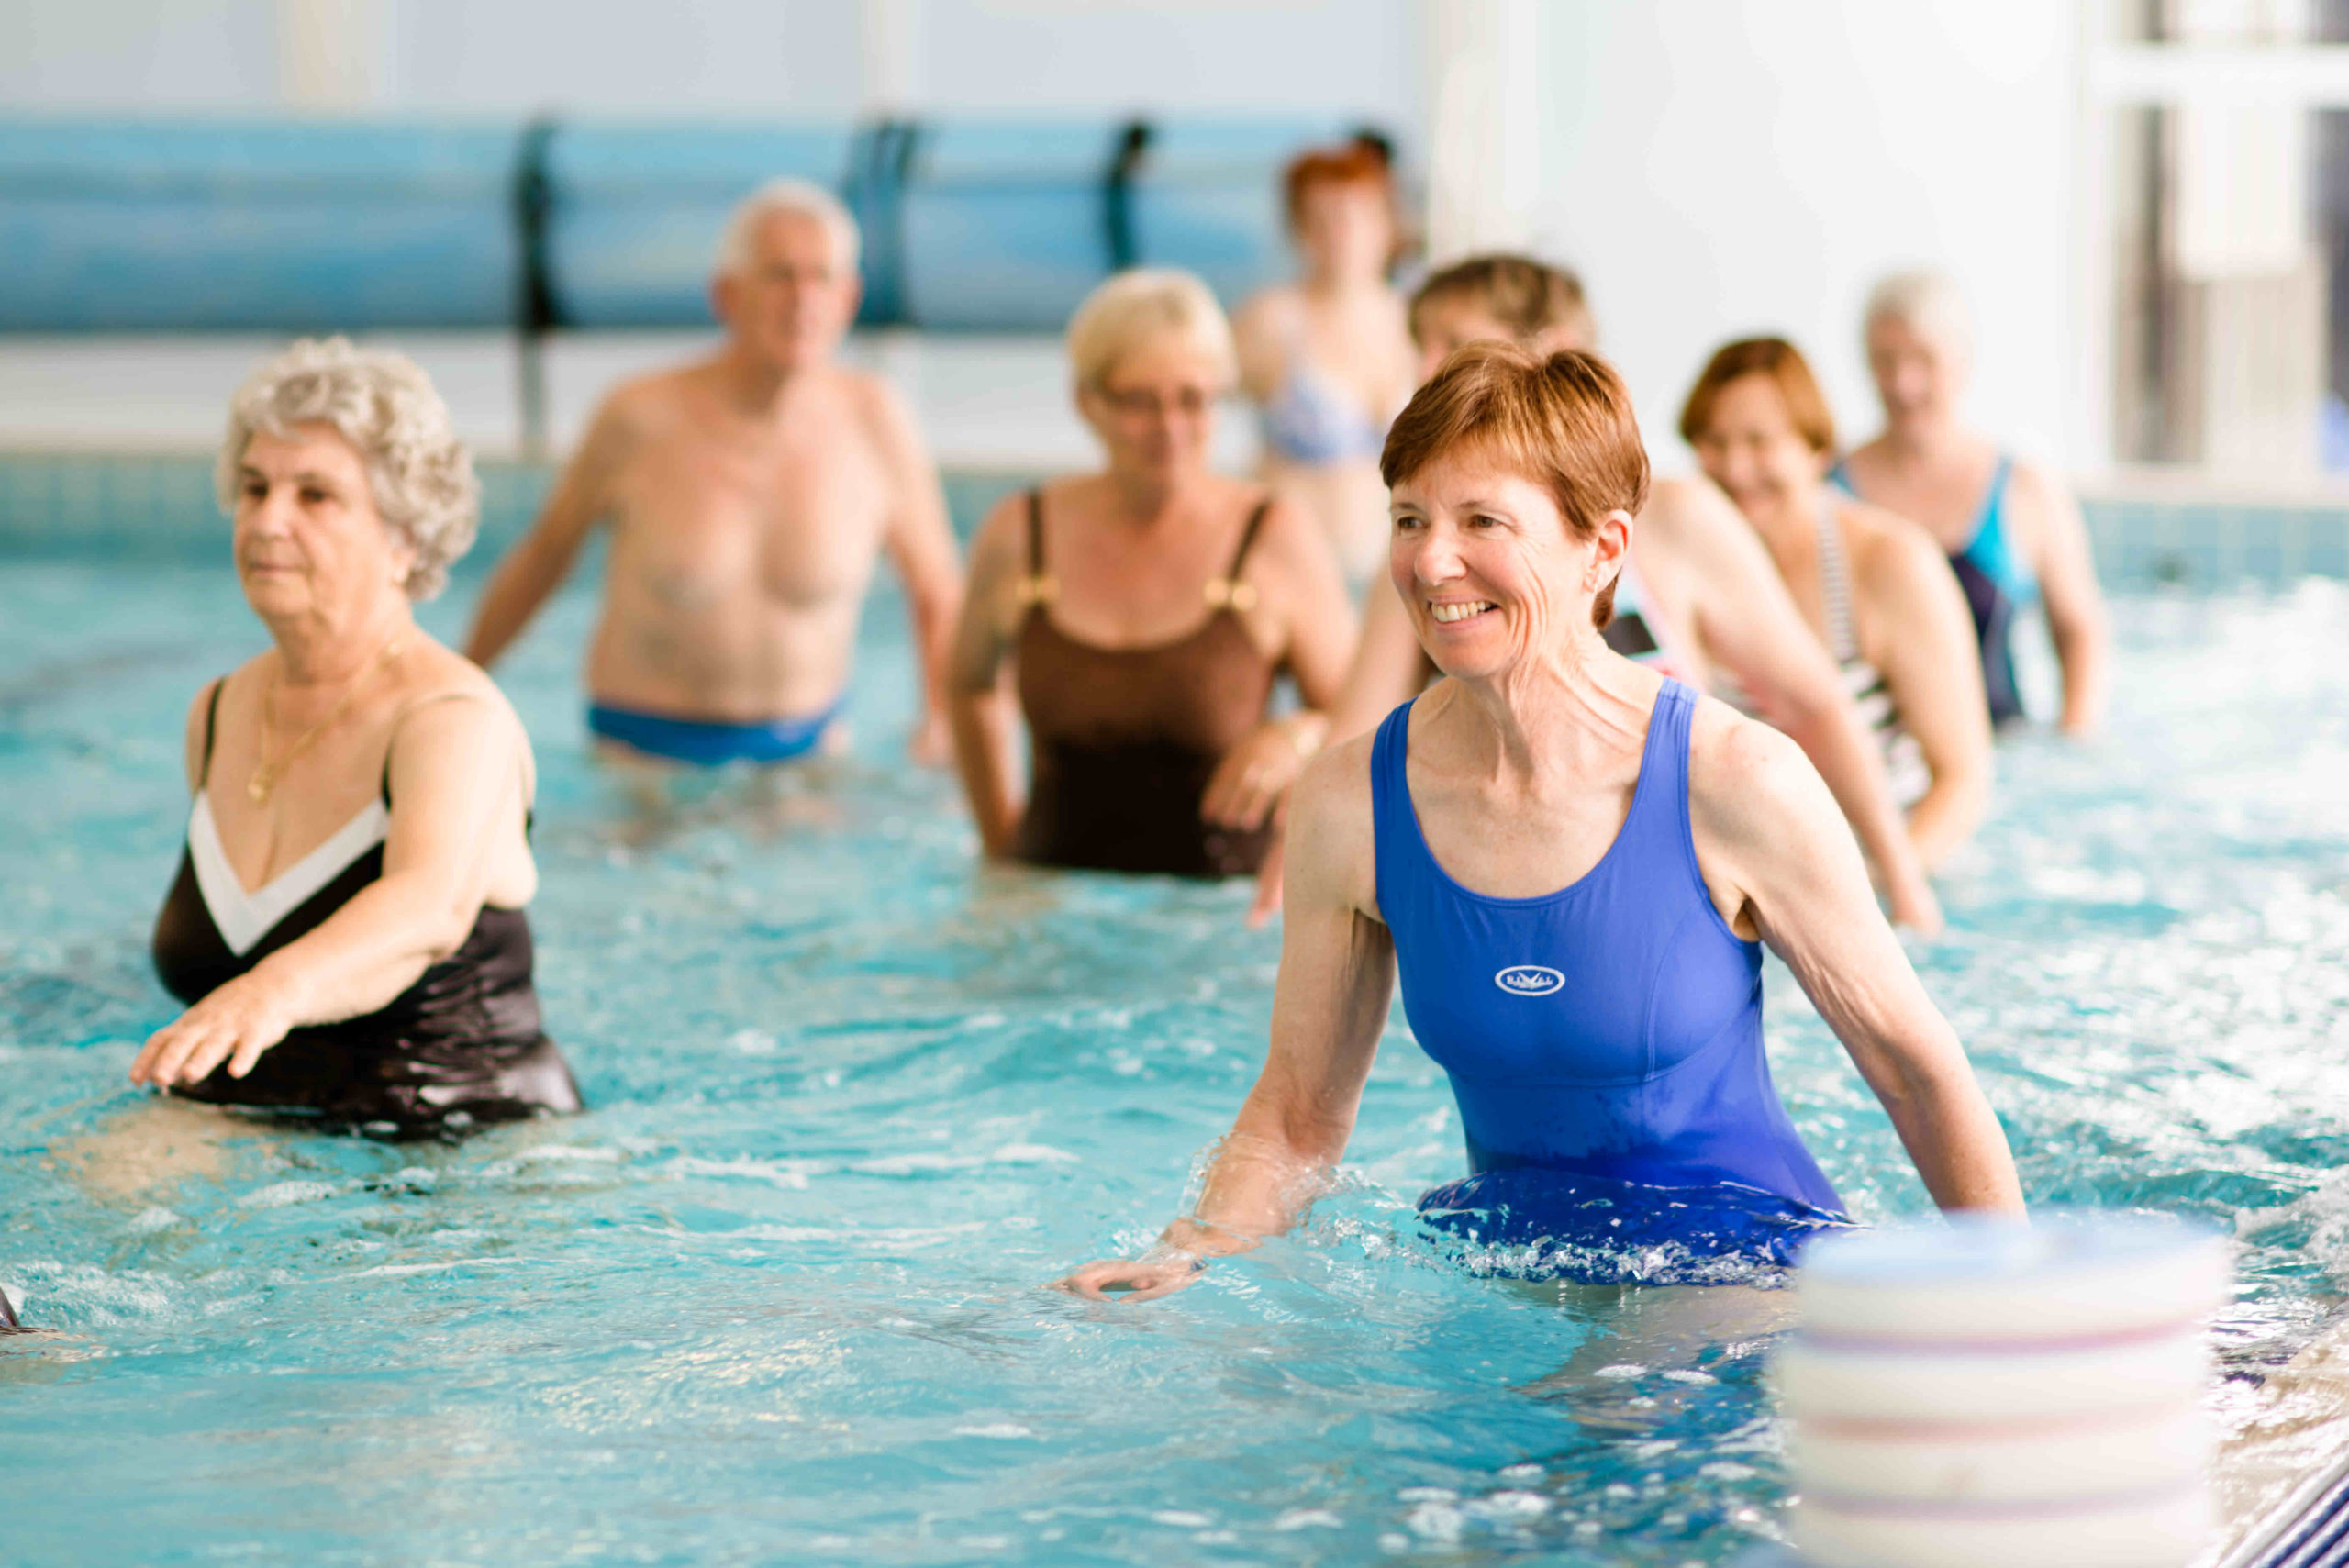 What is hydrotherapy, and who should try it?